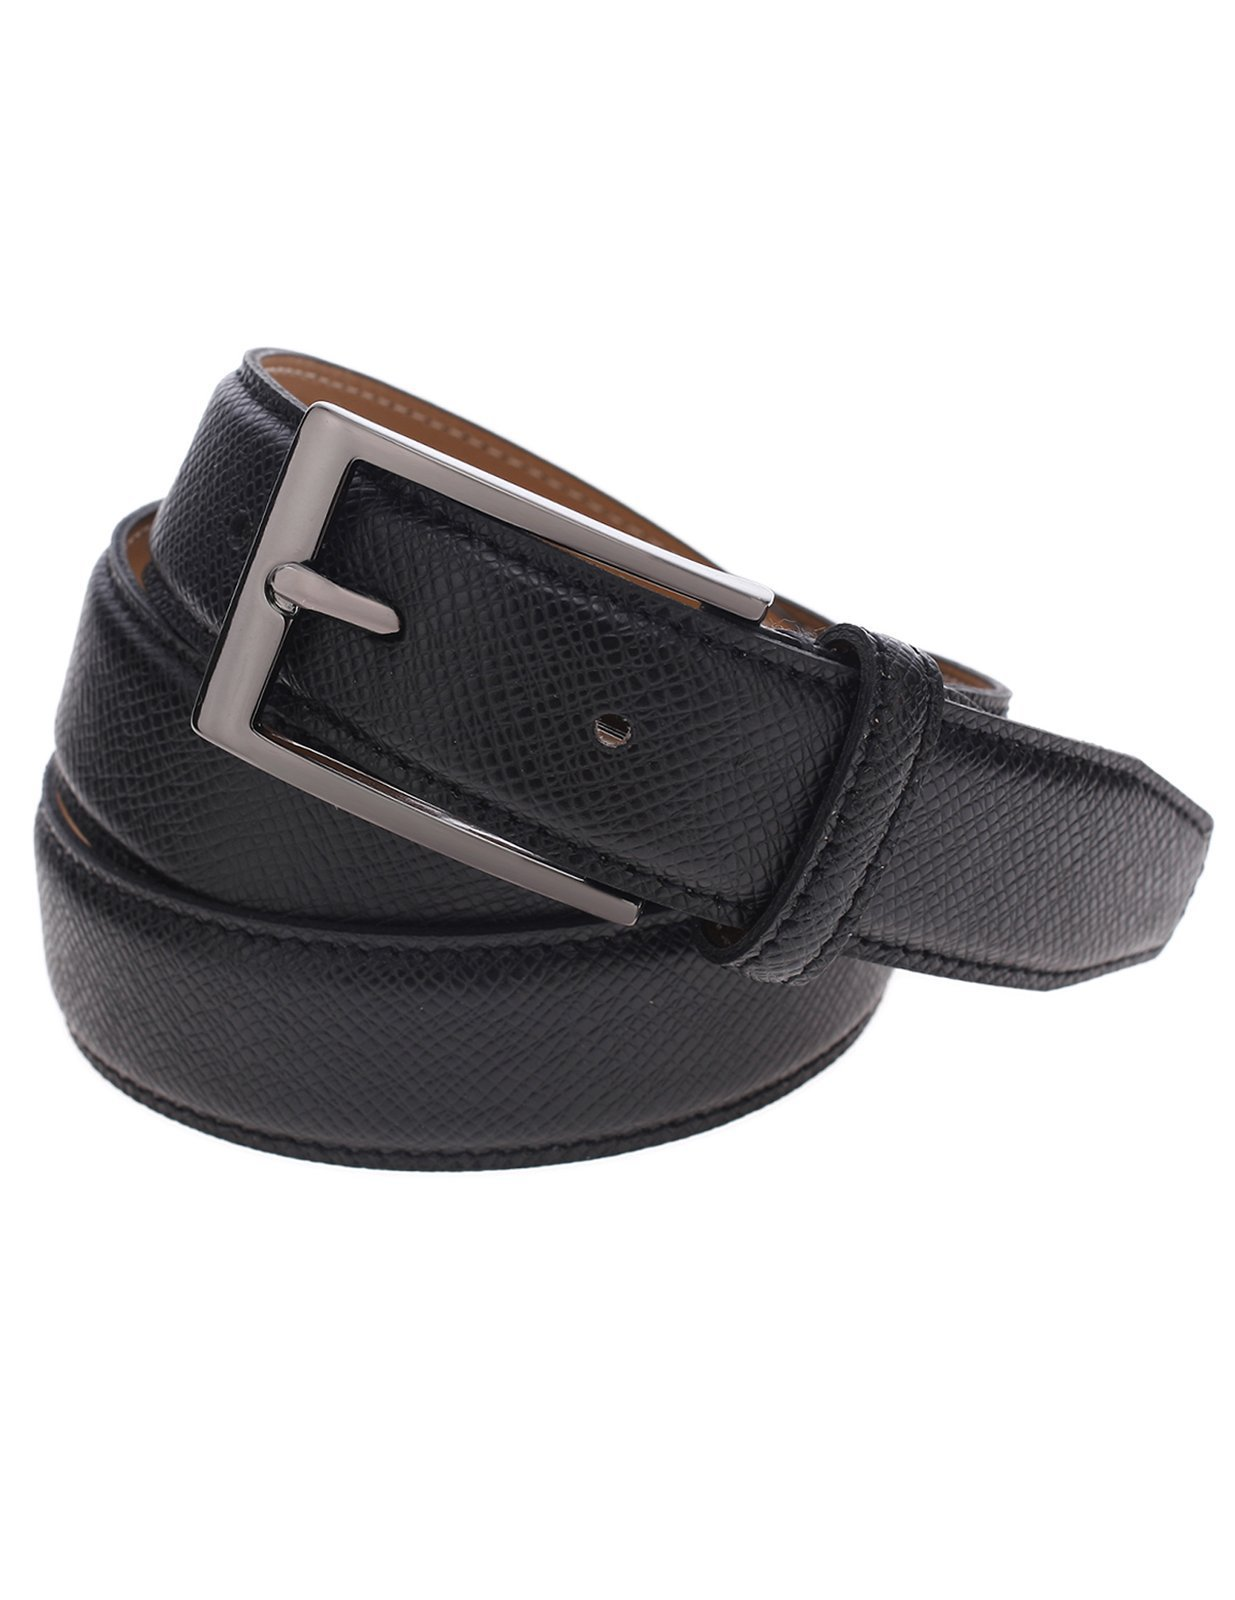 FLATSEVEN Mens Classic Grained Leather Belt with Single Silver Tone Buckle (Y403) Black